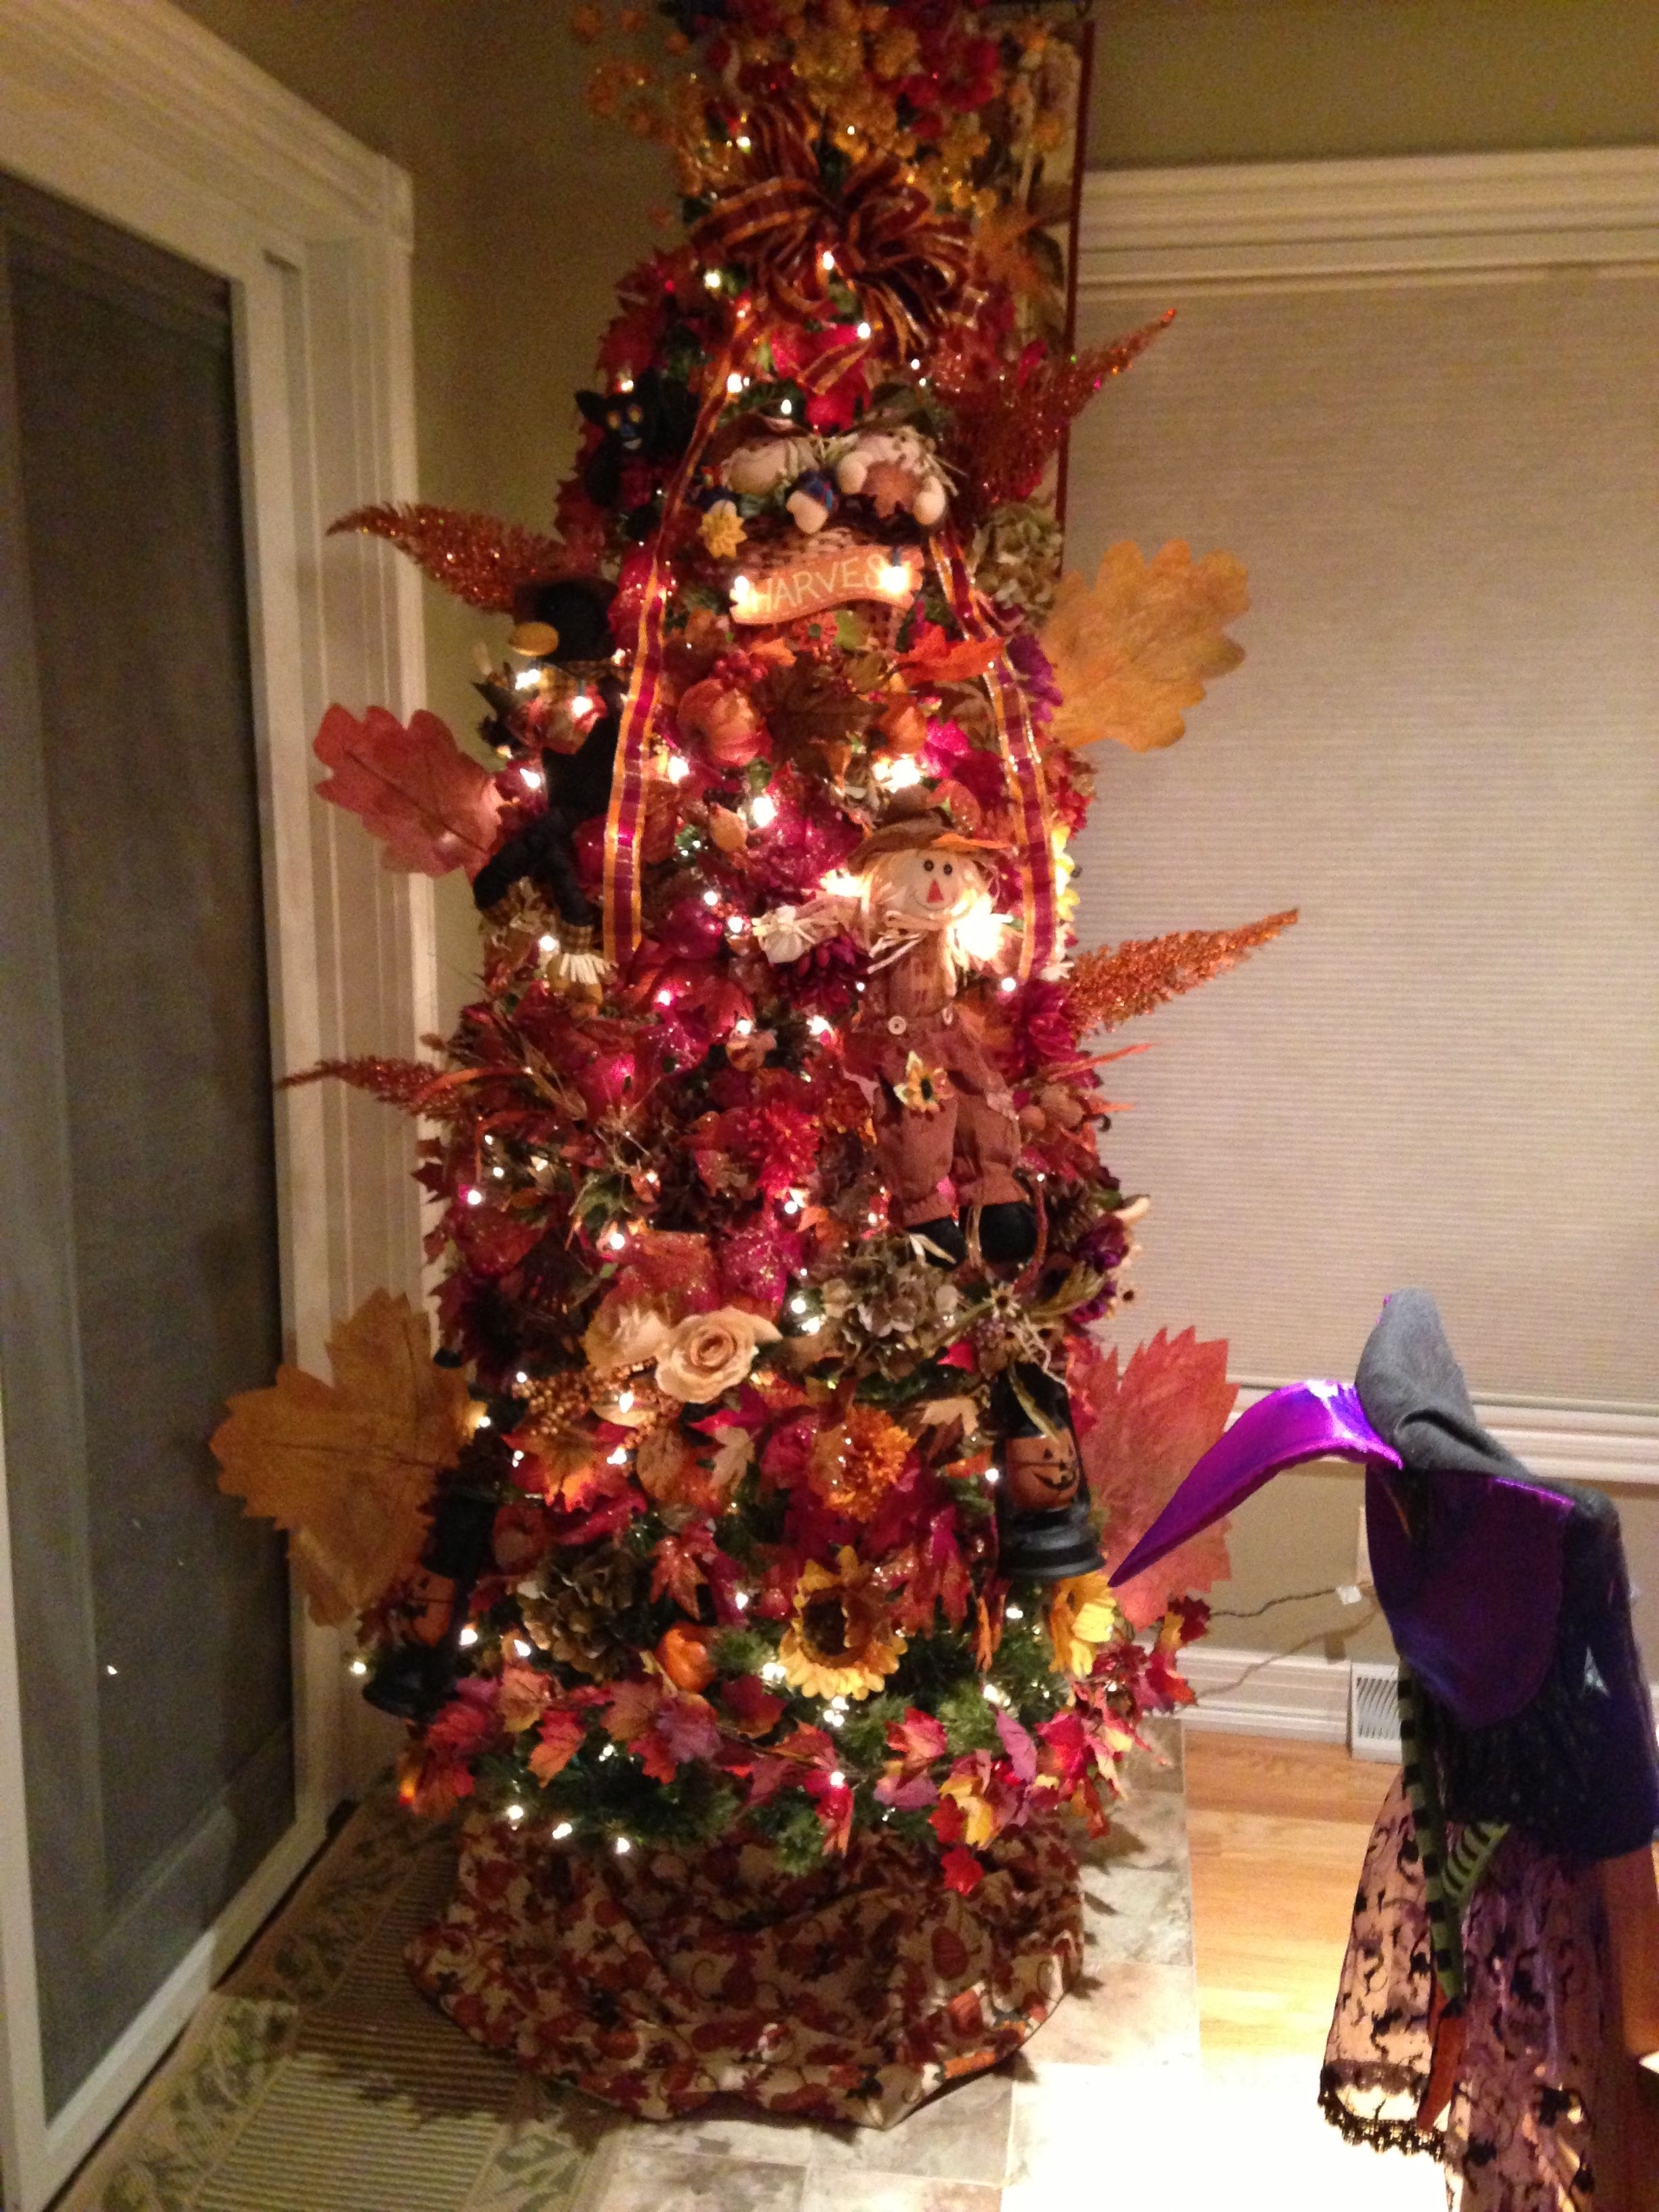 My Halloween/thanksgiving tree. I use my Christmas tree